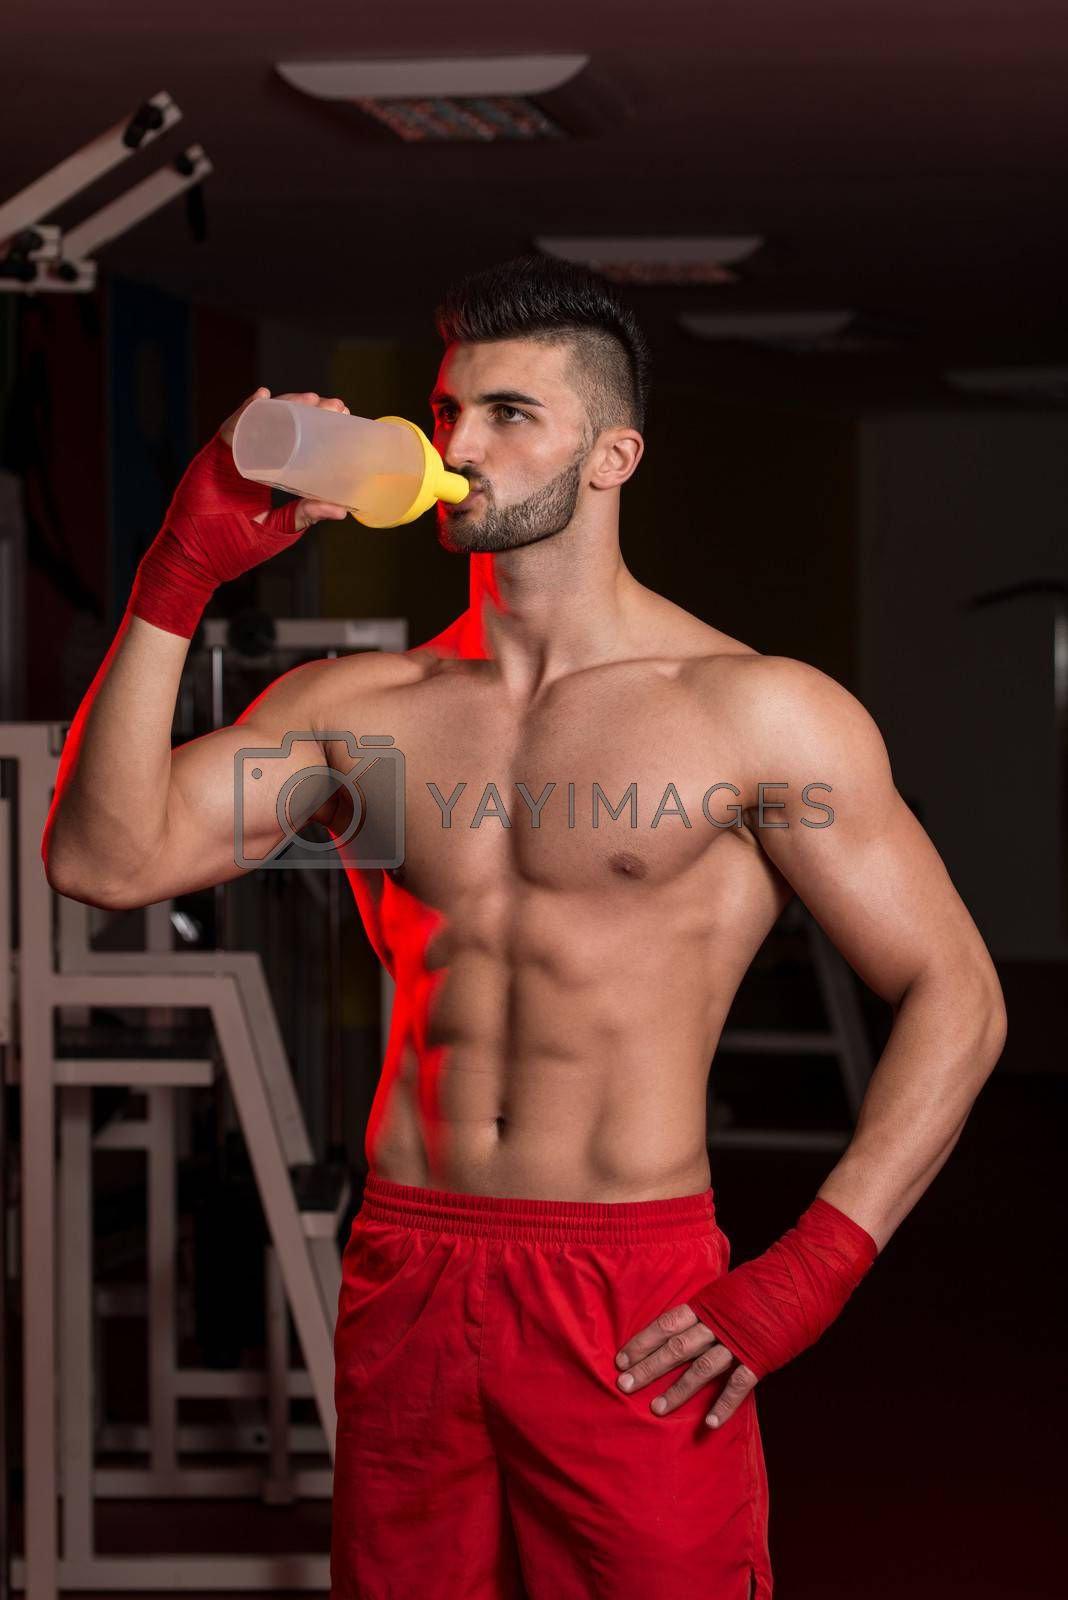 Muscular Men Drinking Water From Shaker